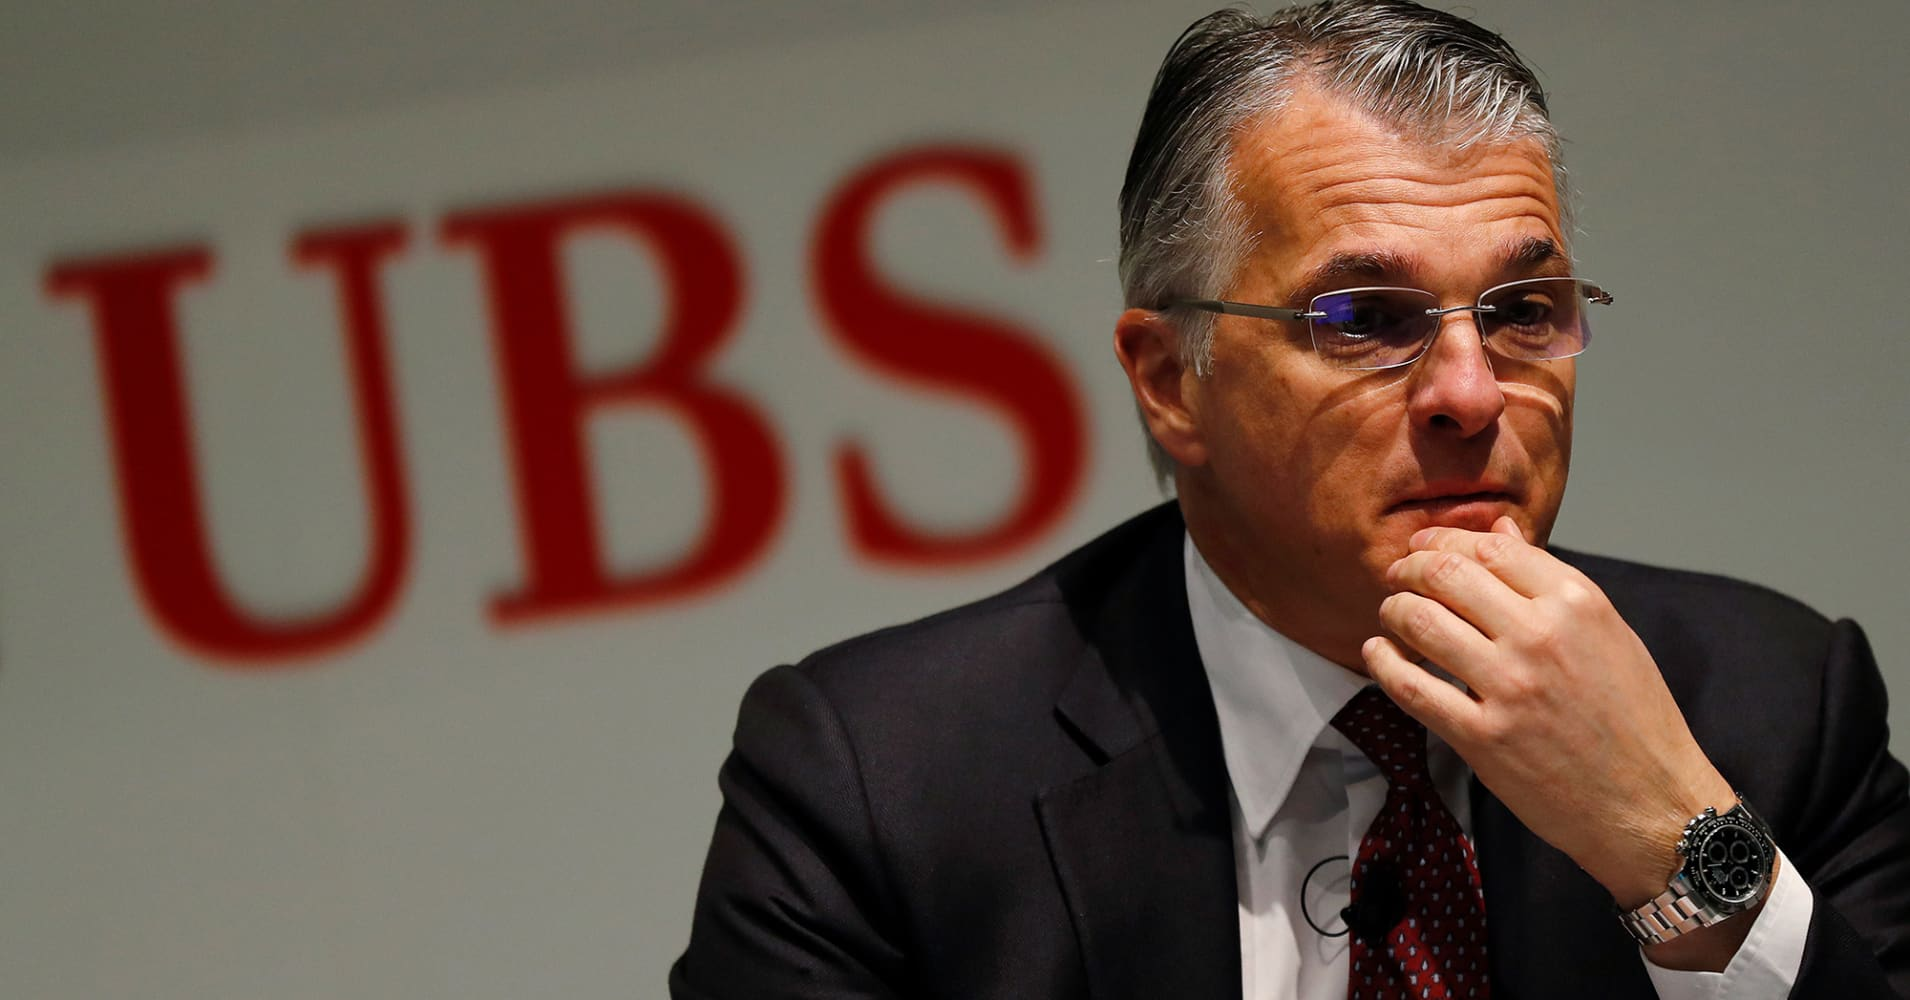 Banking consolidation in Europe is 'inevitable,' UBS chief Ermotti says